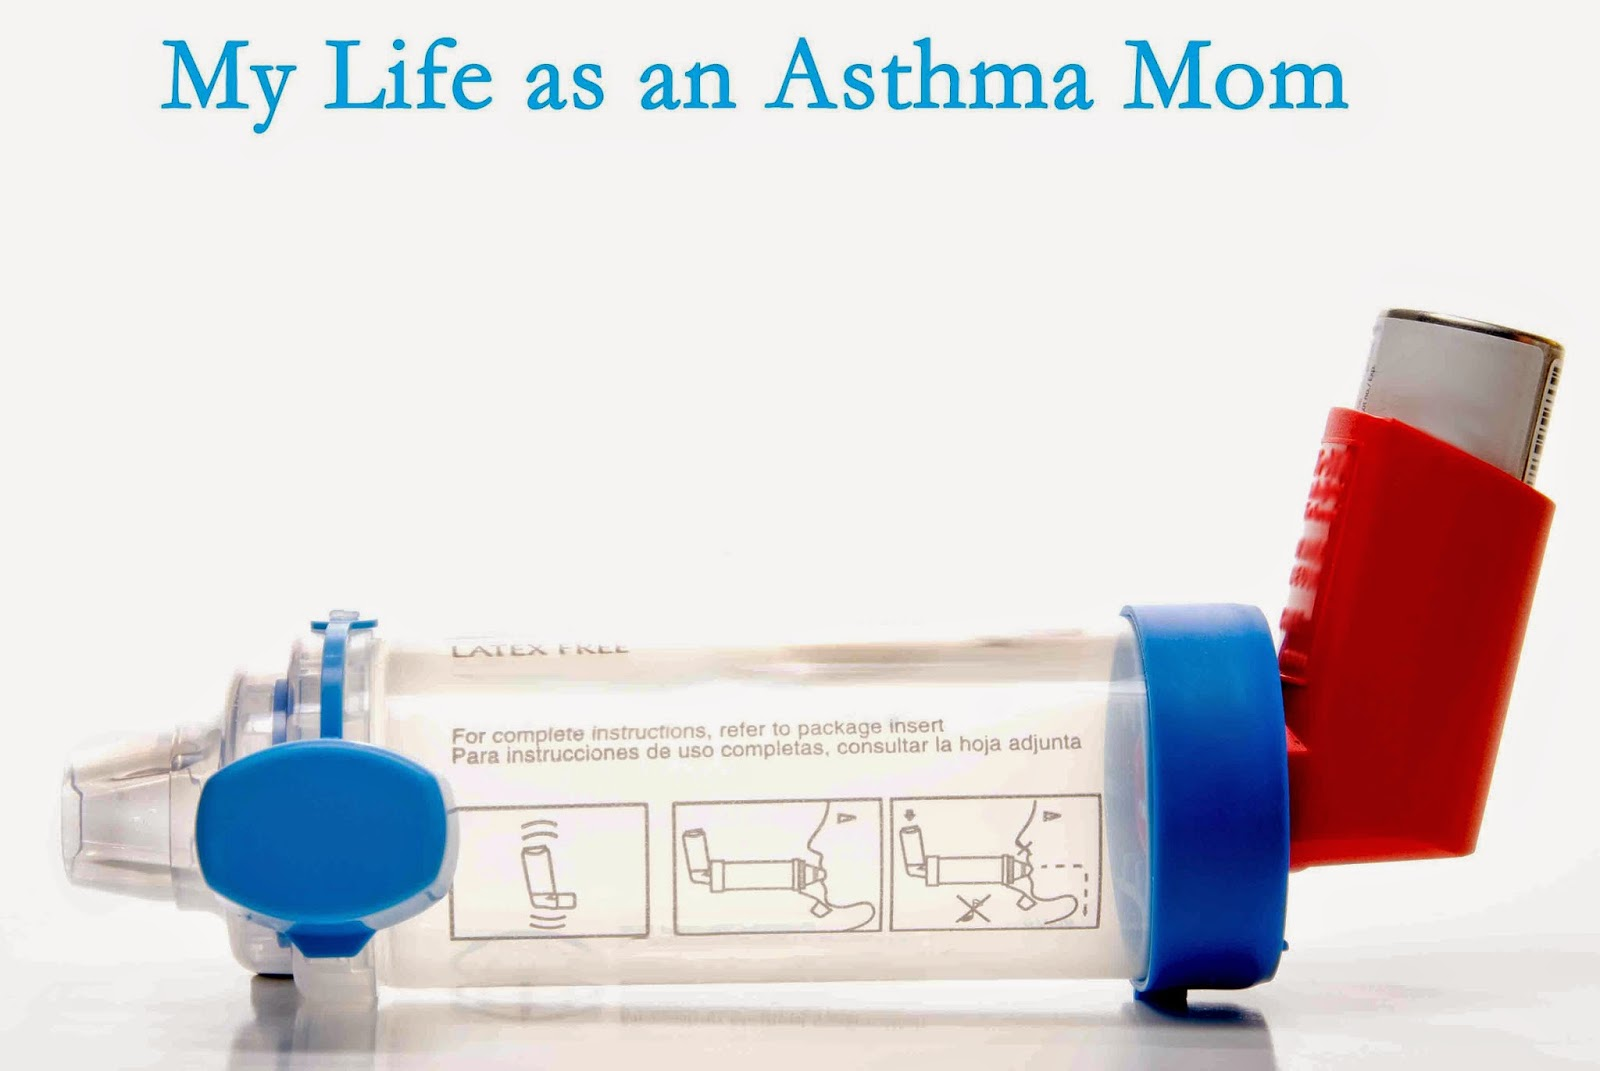 My life as an asthma mom may